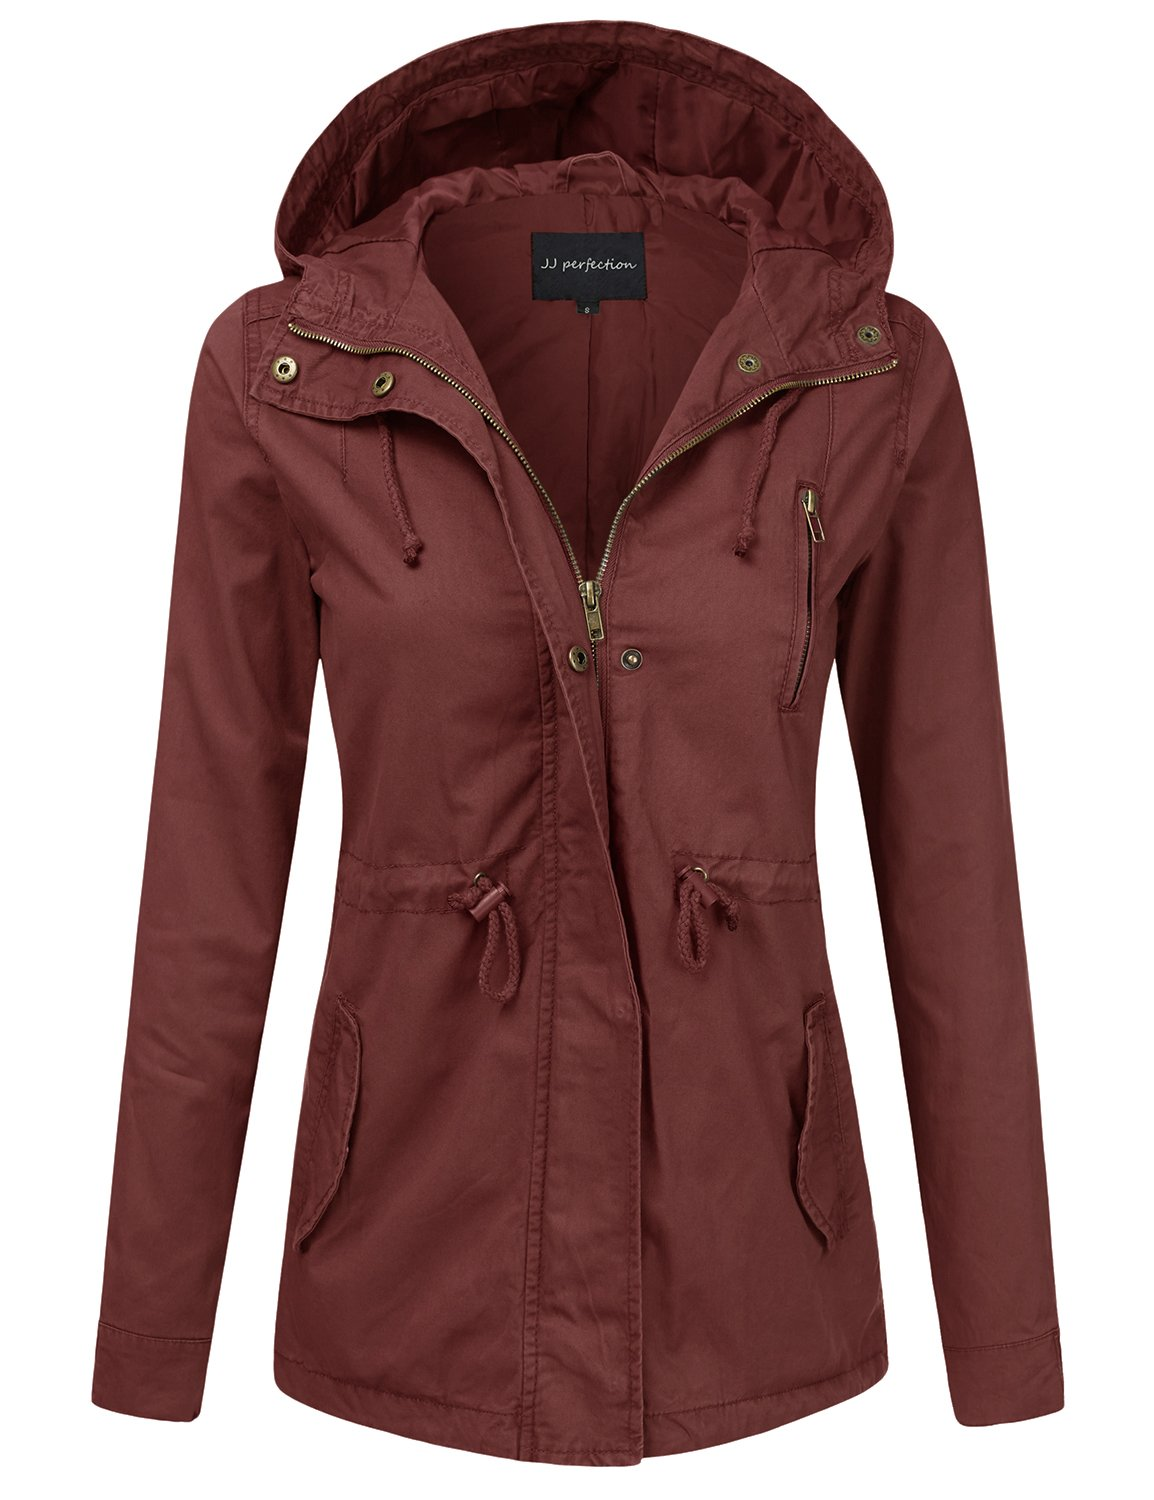 JJ Perfection Women's Casual Lightweight Cotton Anorak Army Utility Jacket Marsala S